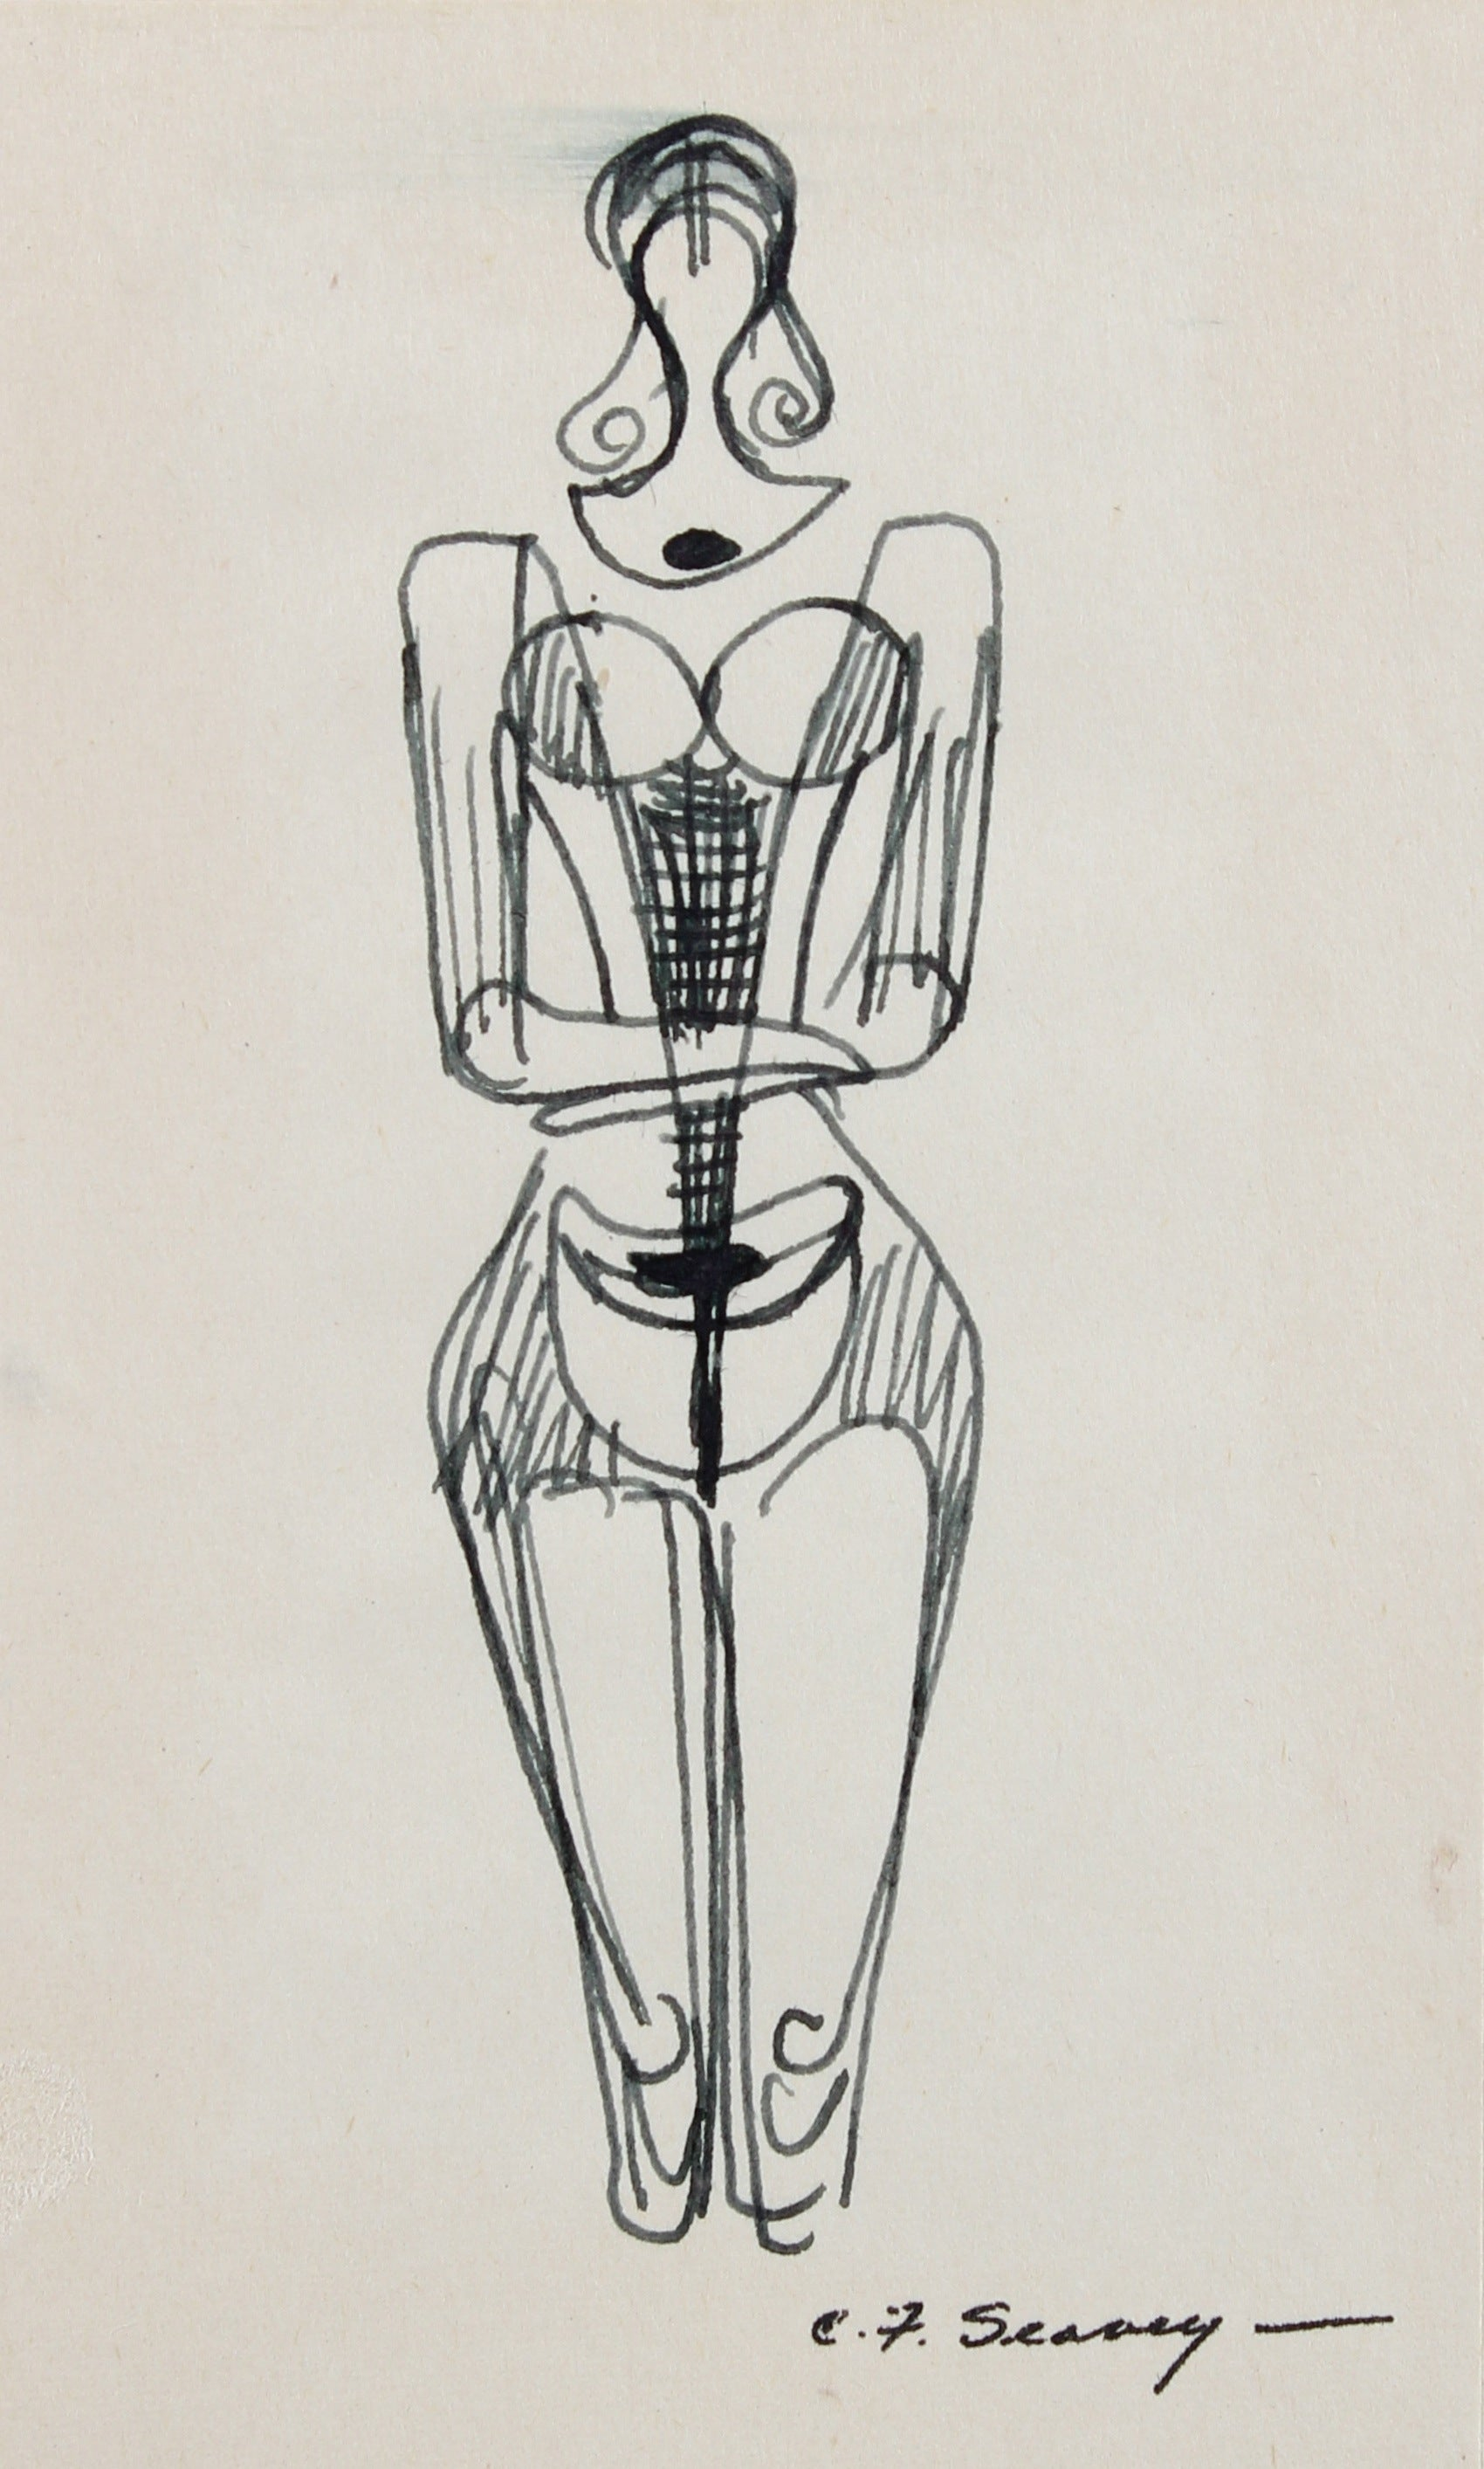 Petite Monochromatic Deconstructed Figure <br>1952 Ink <br><br>#3502